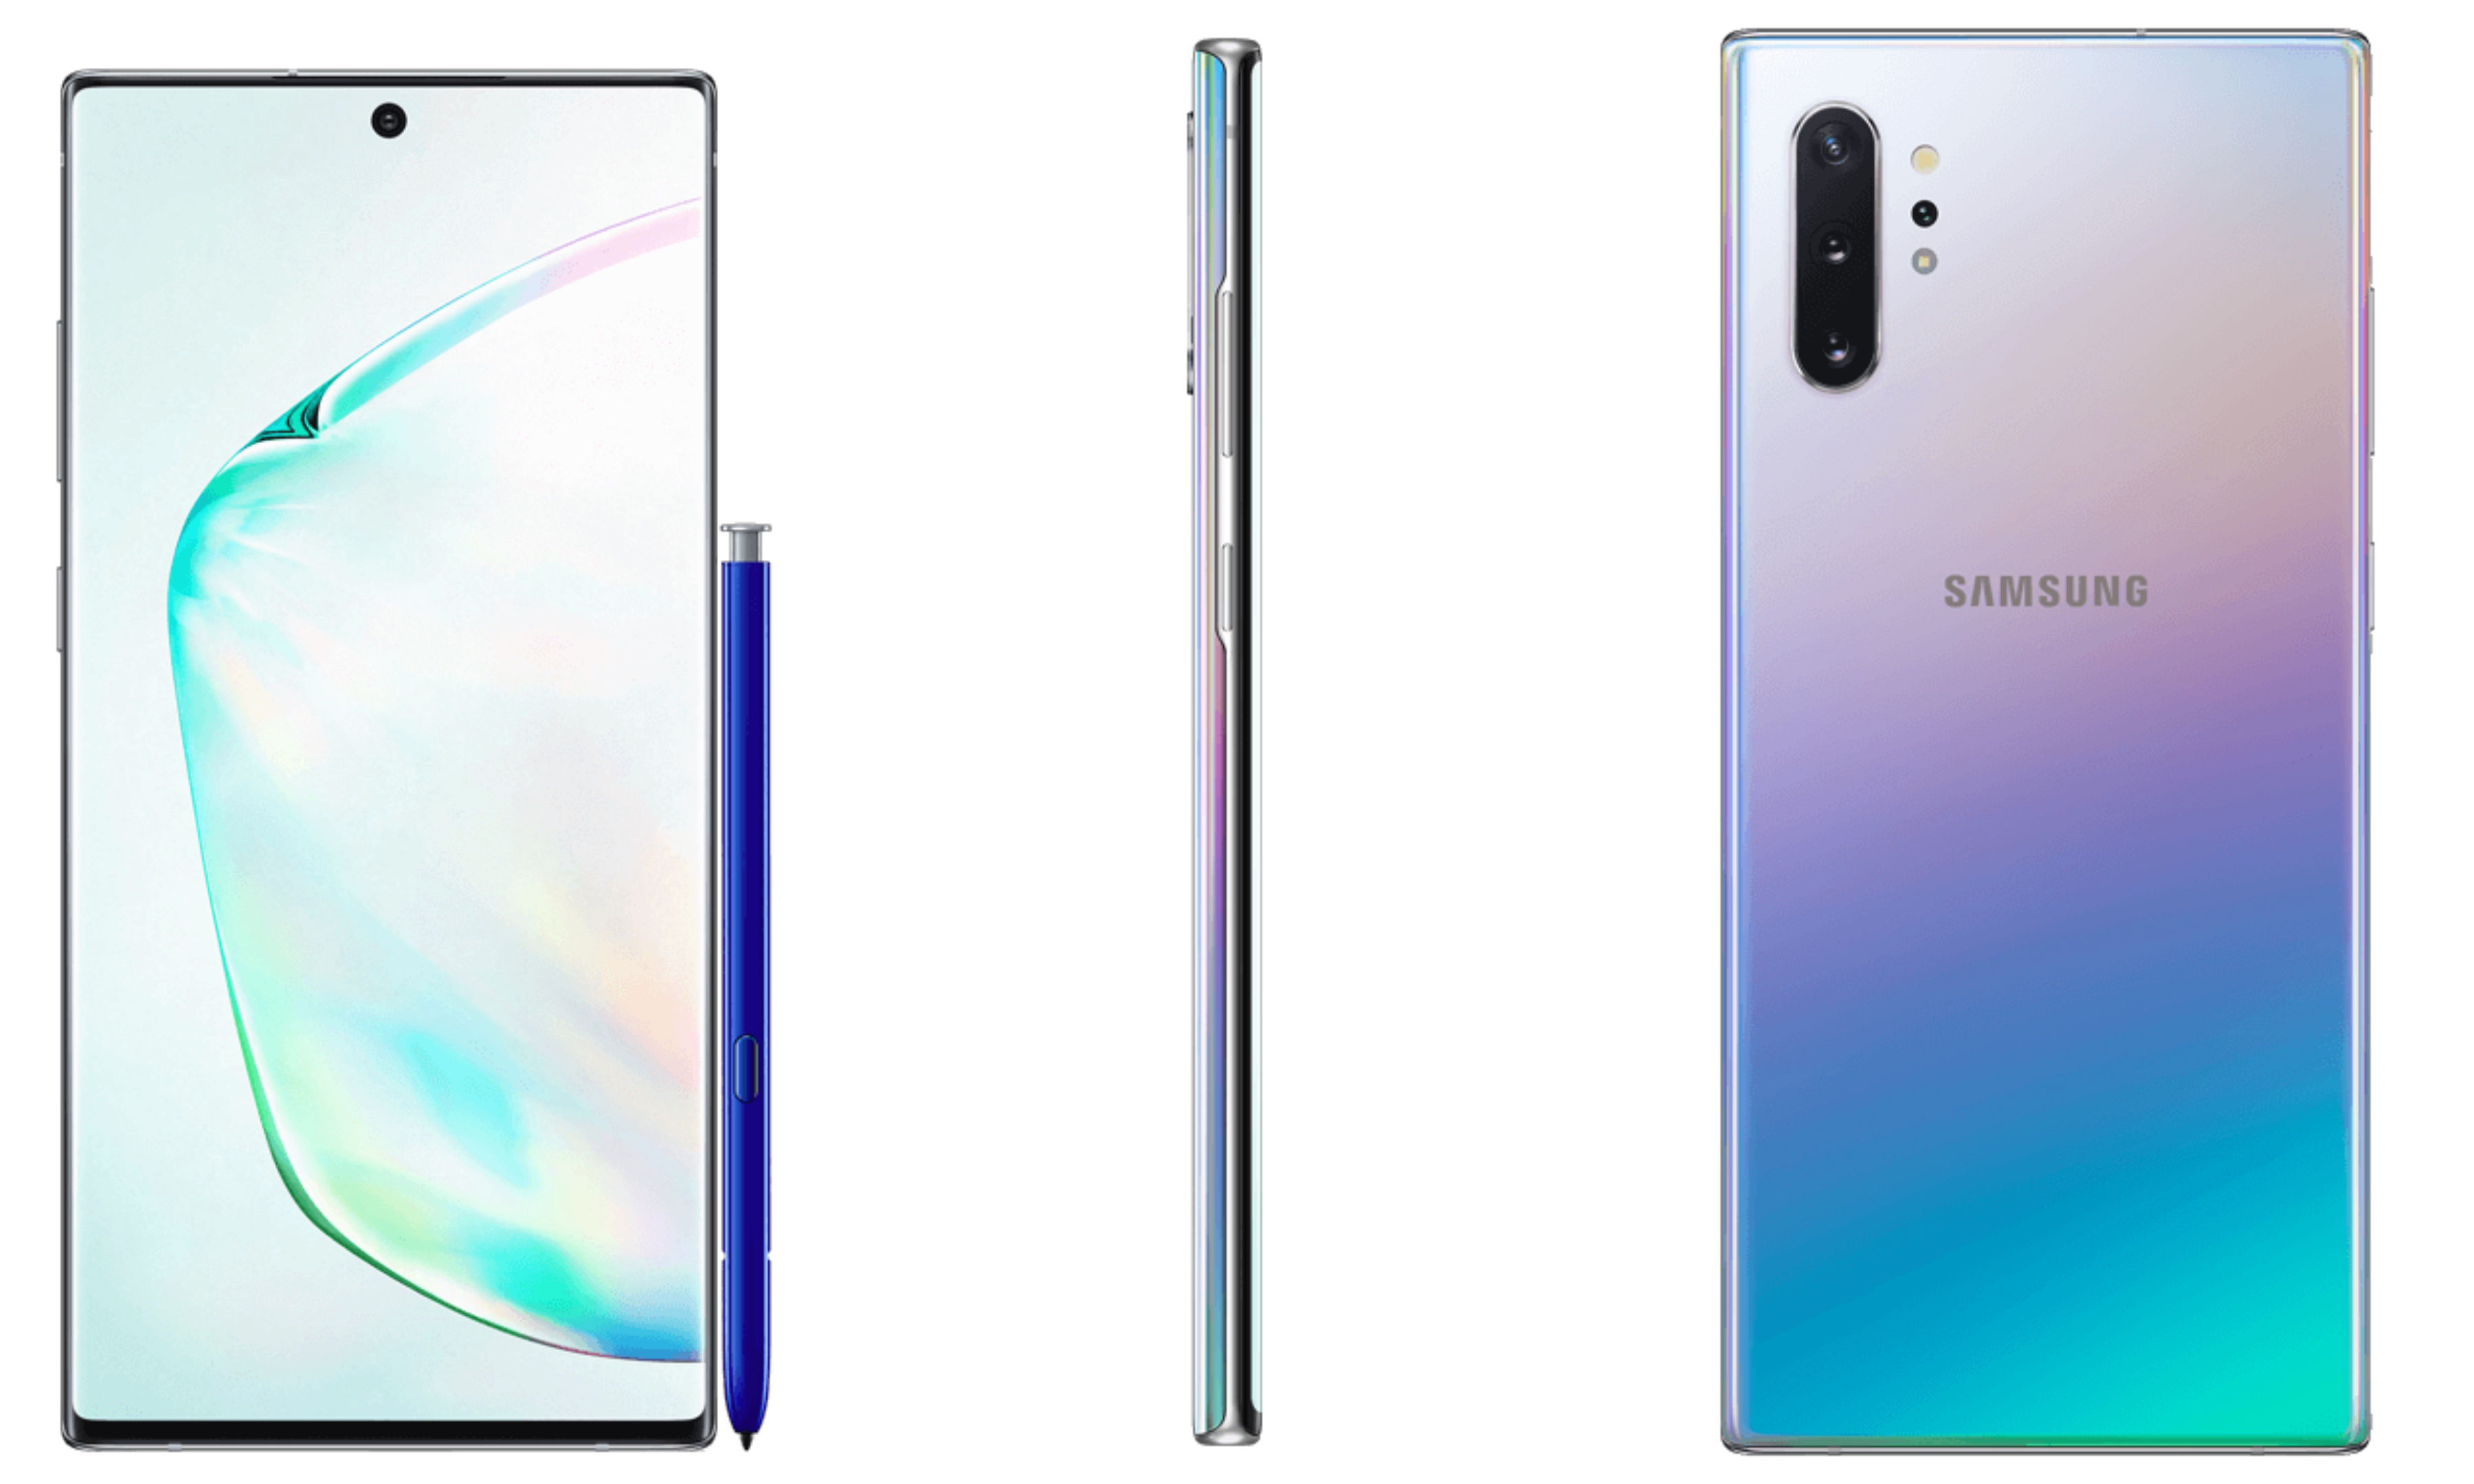 Samsung Galaxy Note 10 turns out to be faster than S10 and OnePlus 7